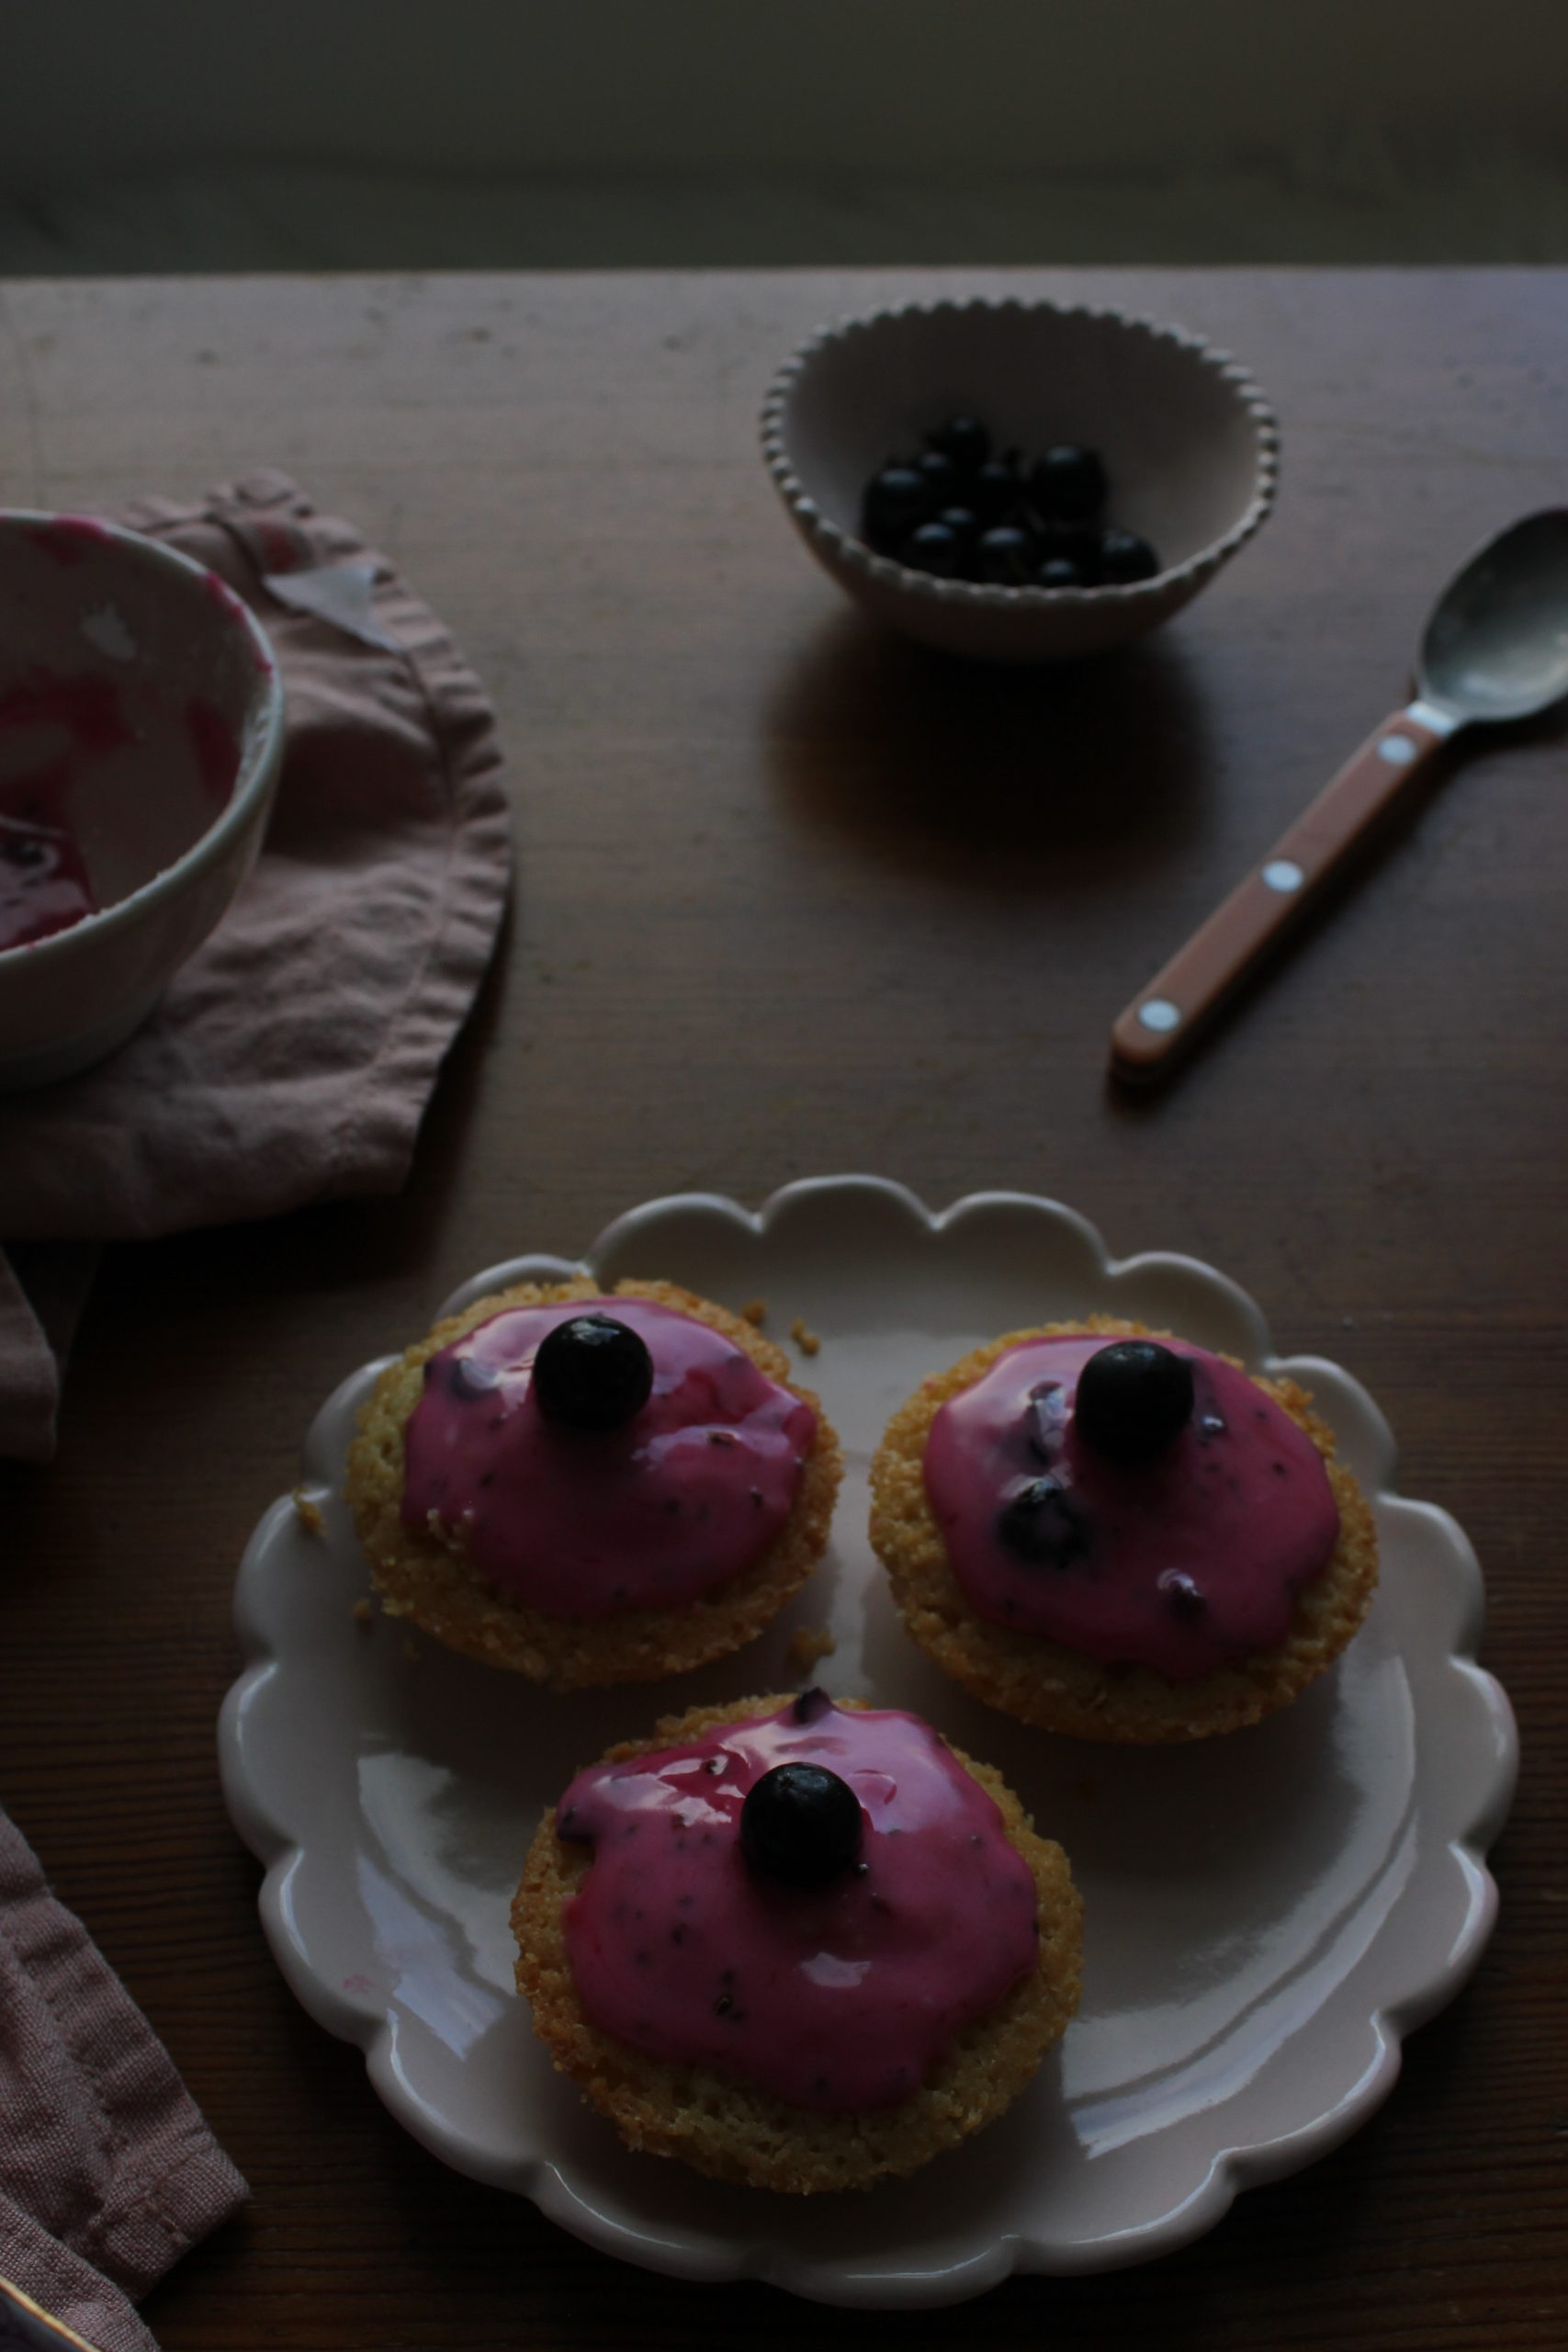 Blackcurrant and Almond Cakes